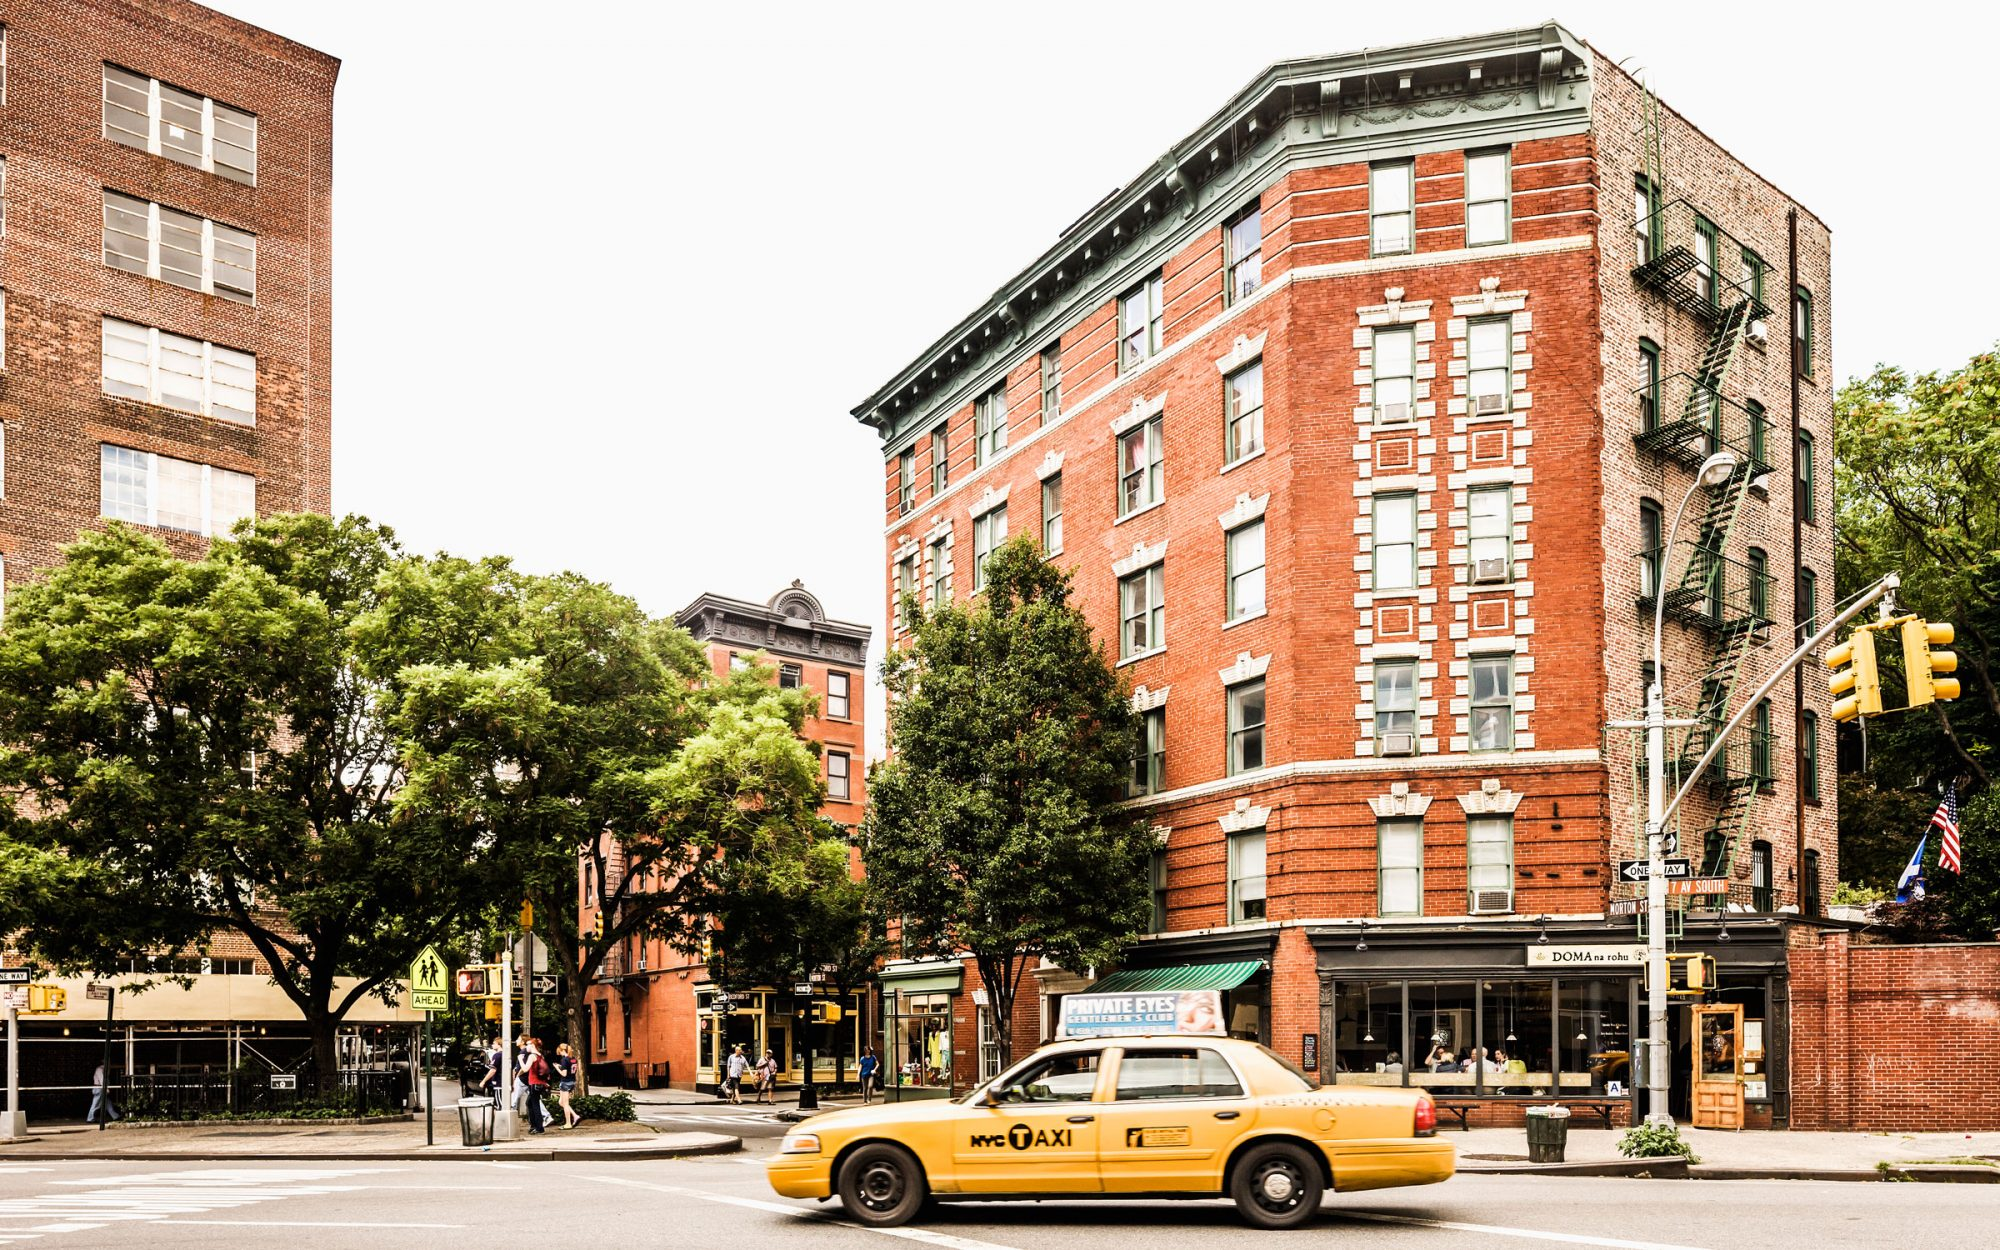 Three Days in New York City's Greenwich Village—What To See and Do